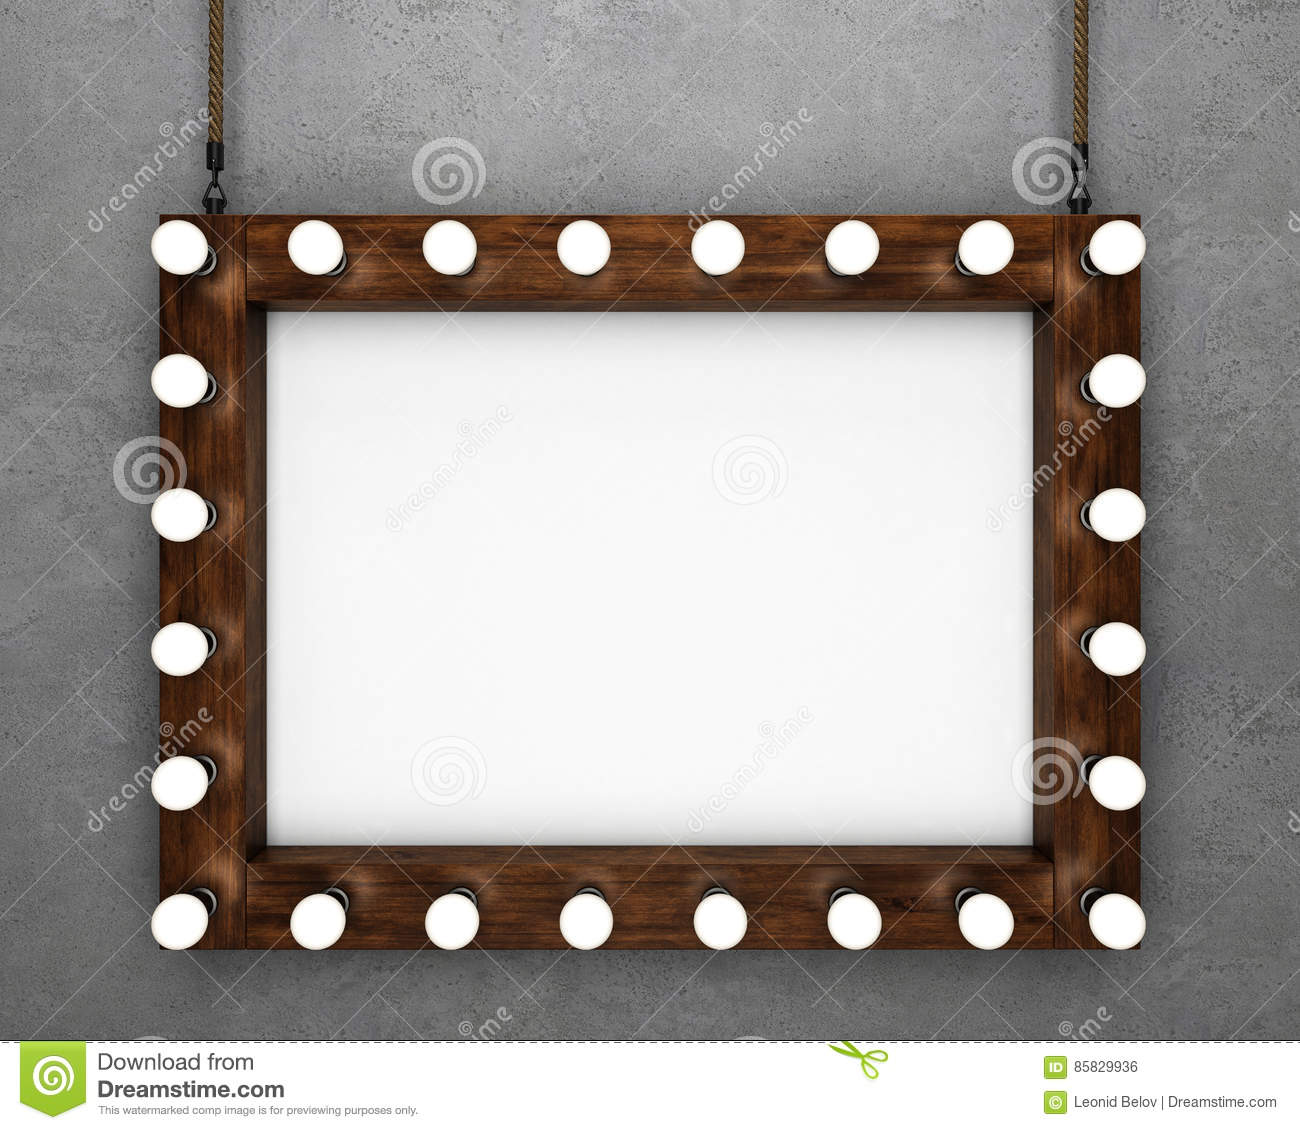 Wooden frame on concrete background illuminated by light bulbs